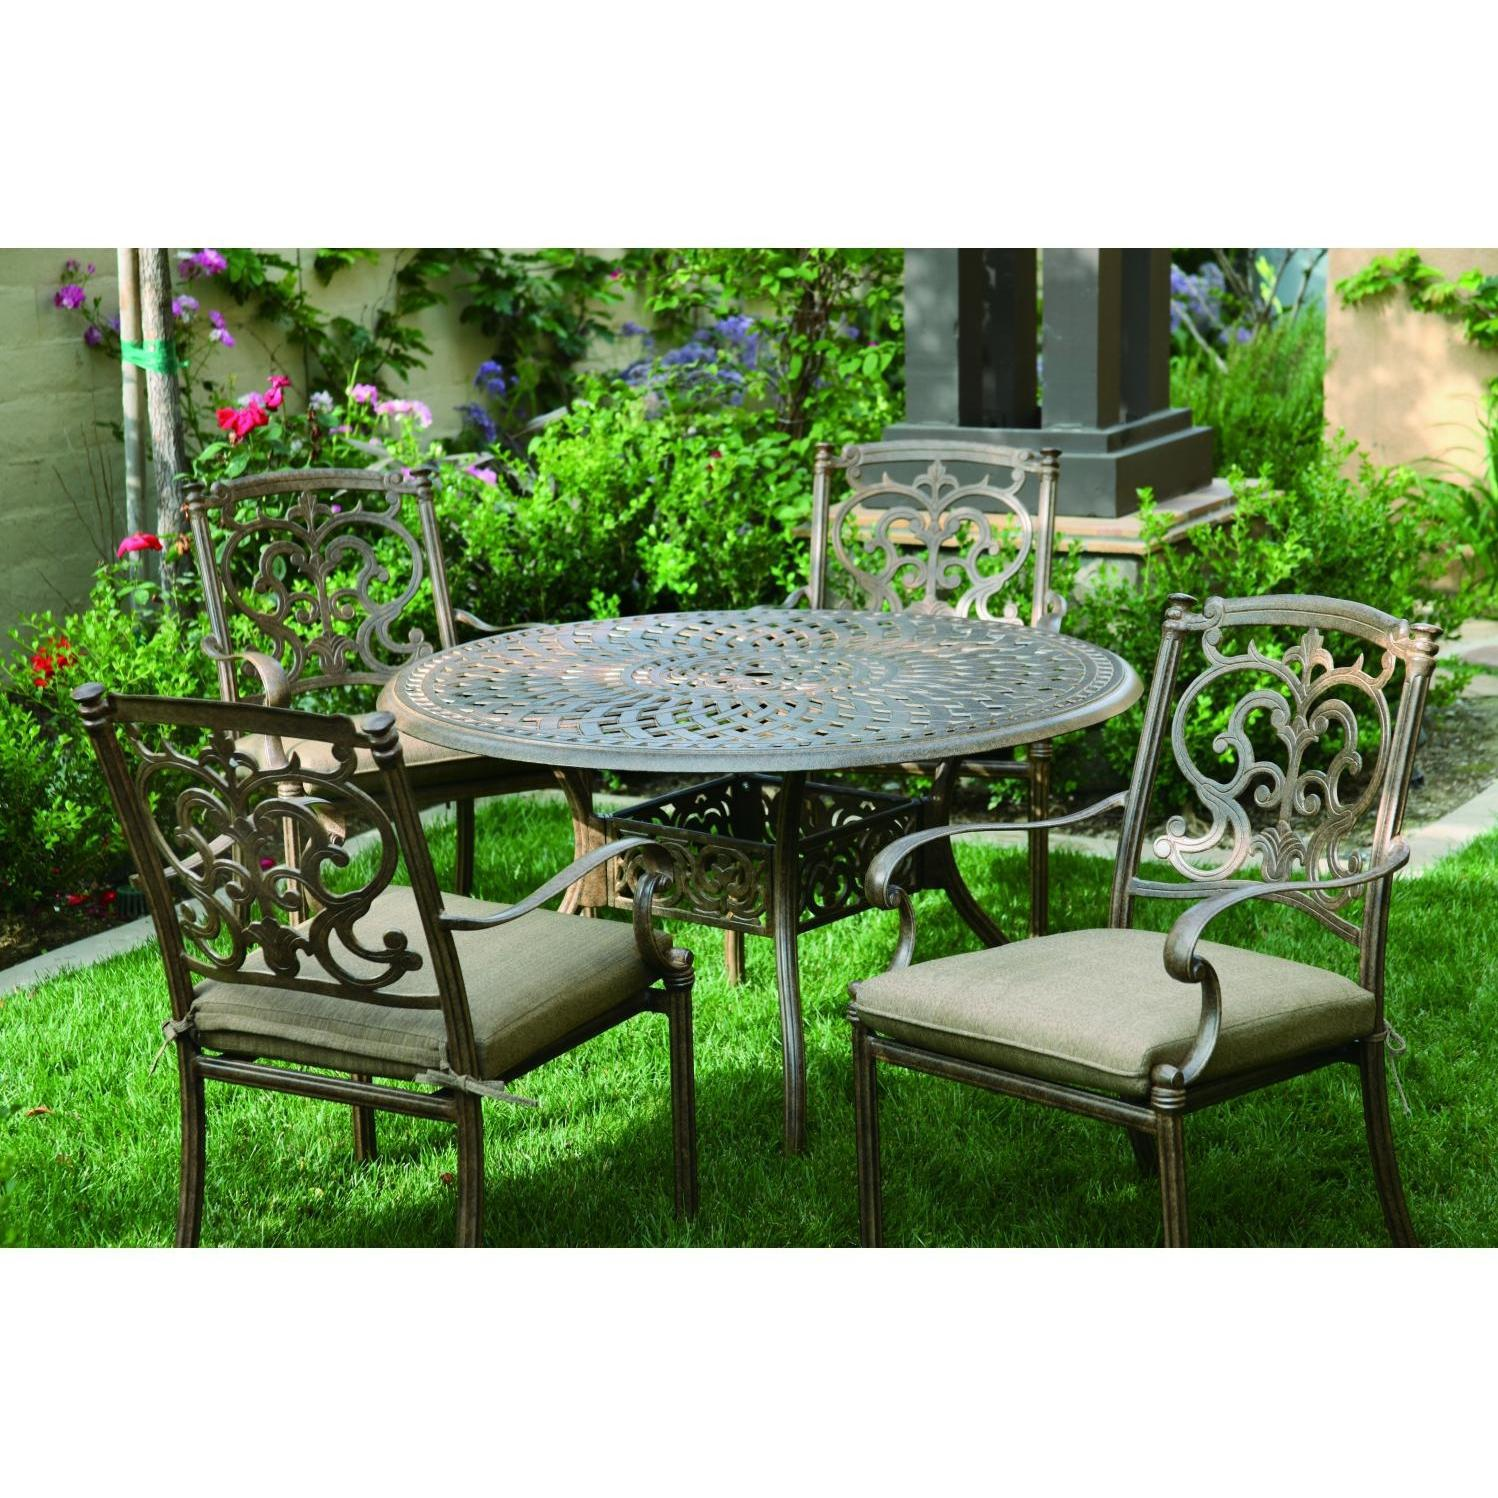 Darlee santa barbara 5 piece cast aluminum patio dining set for Outdoor furniture brands